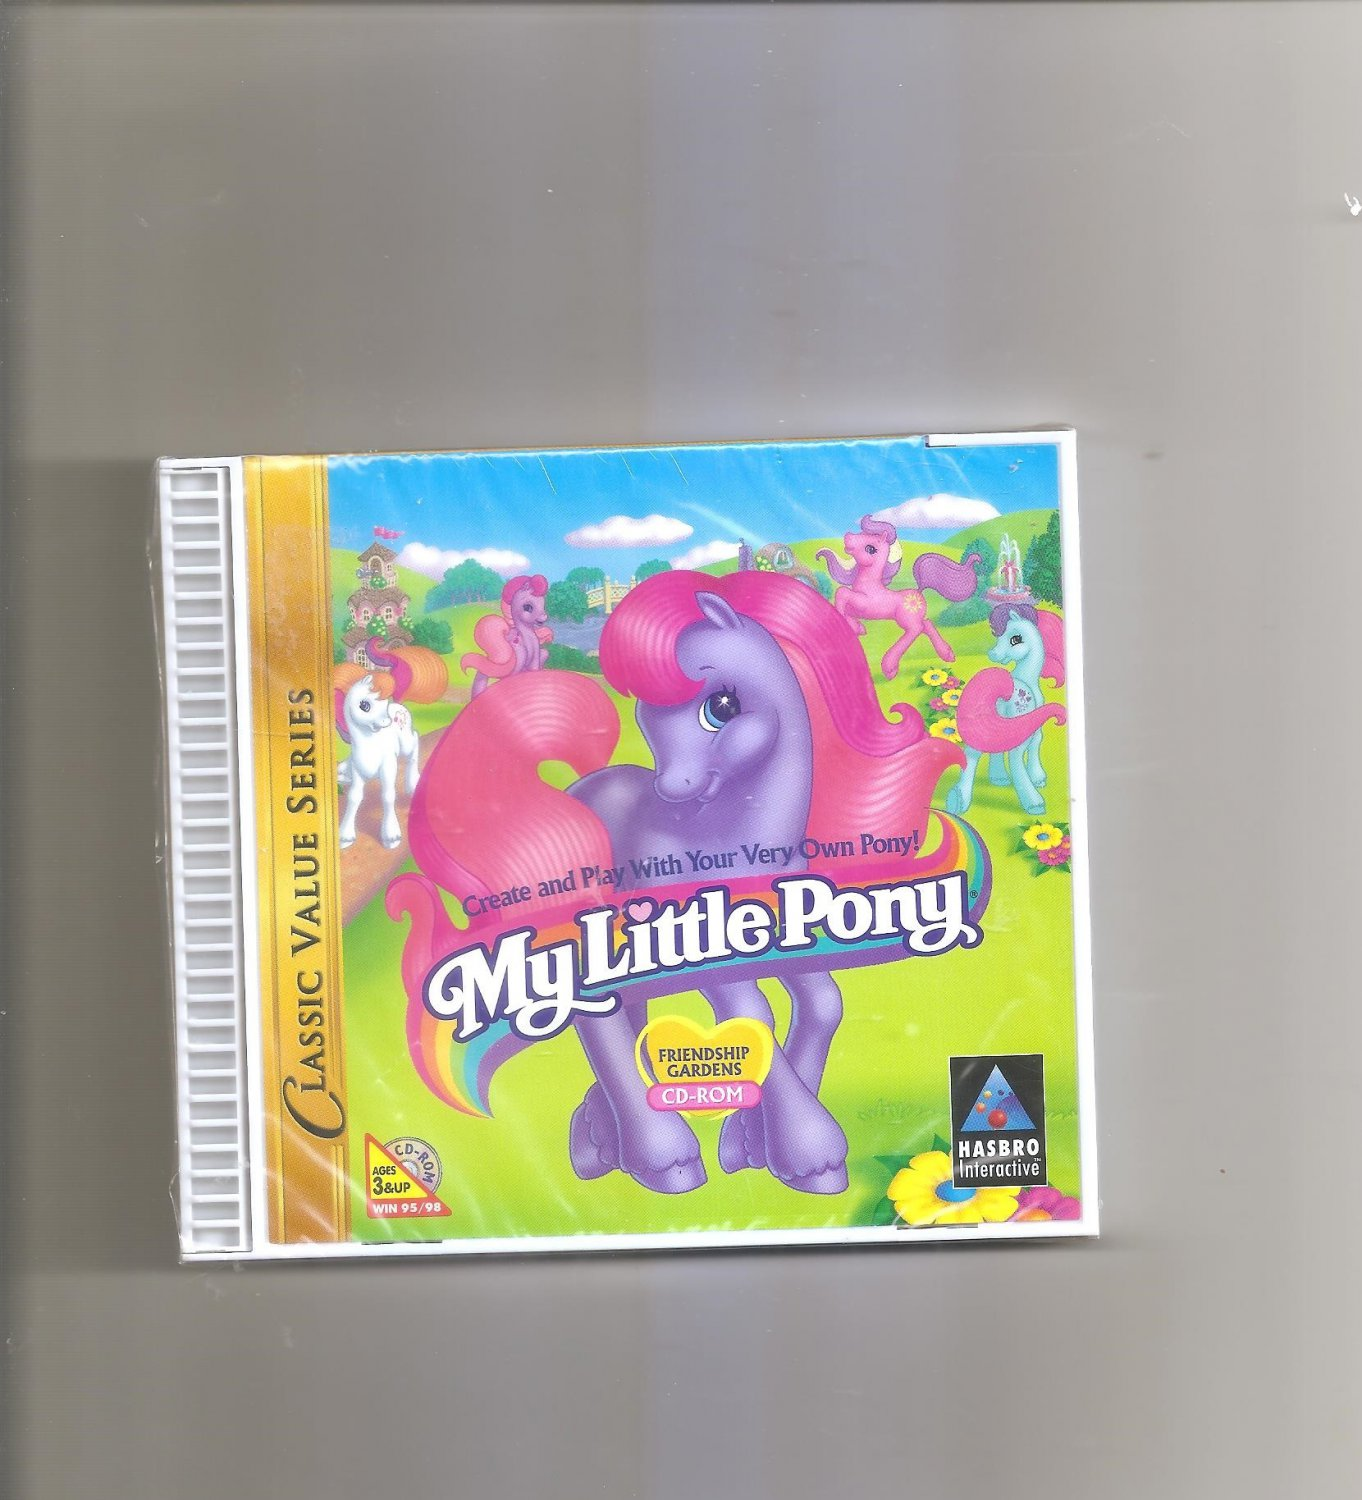 My Little Pony: Friendship Gardens CD-ROM Classic Value Series (PC, 1998)